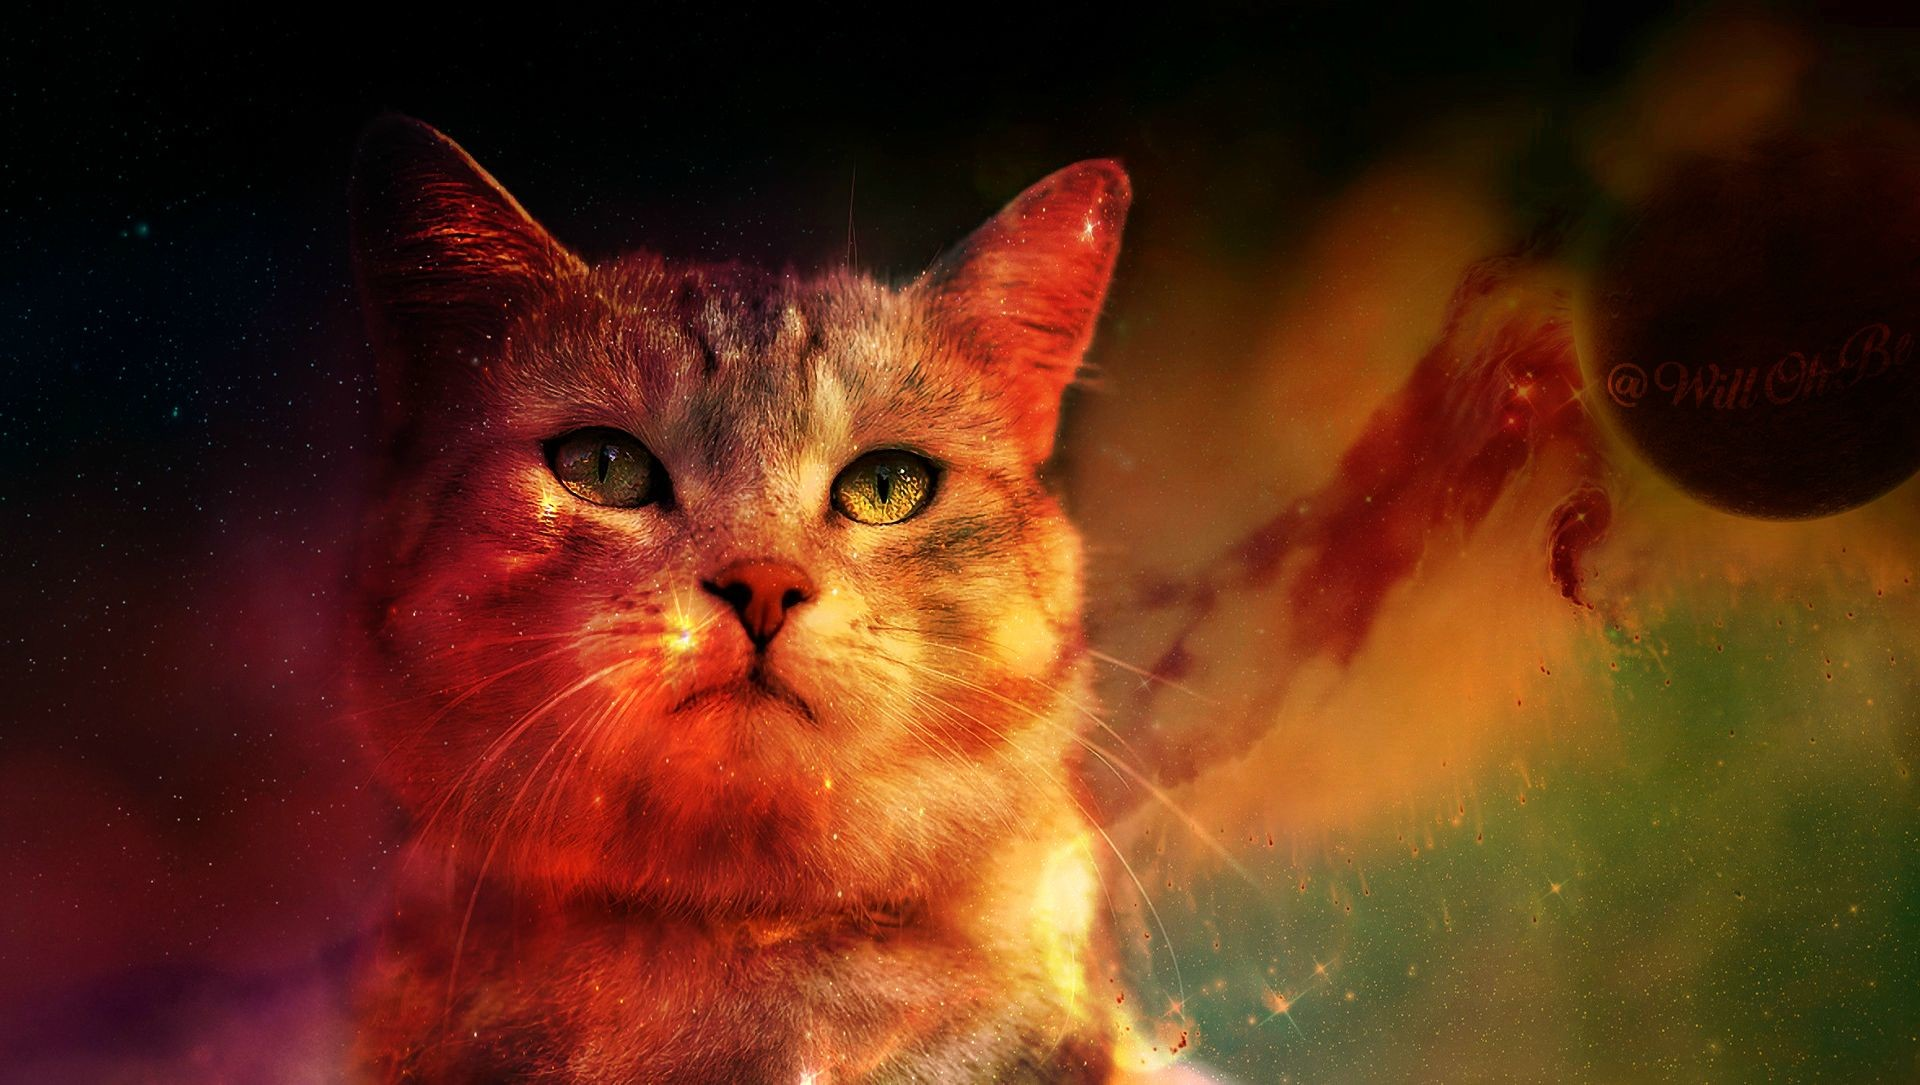 The Majestic Space Cat …